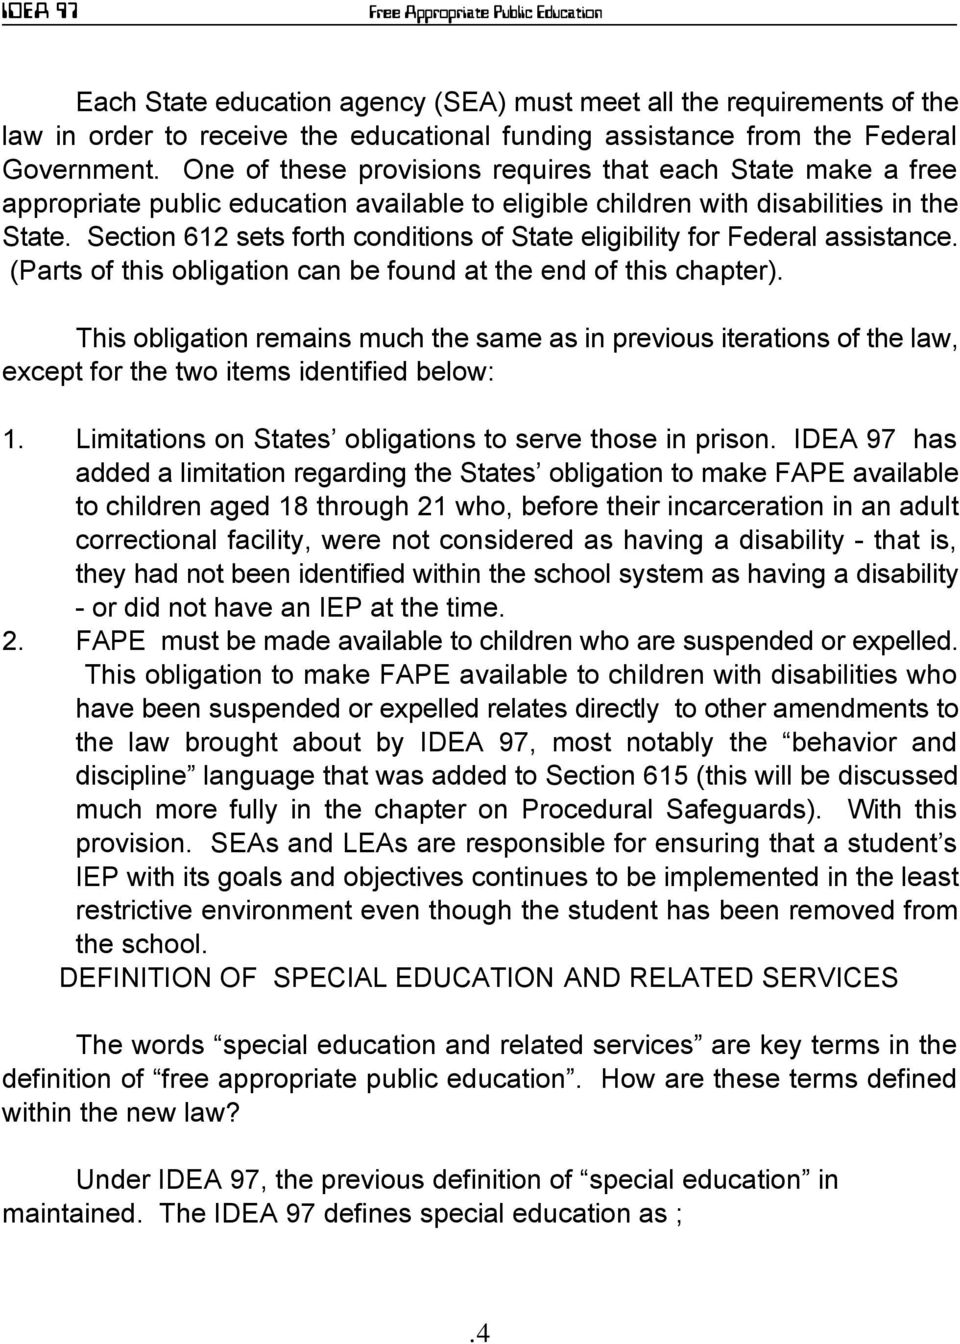 Section 612 sets forth conditions of State eligibility for Federal assistance. (Parts of this obligation can be found at the end of this chapter).